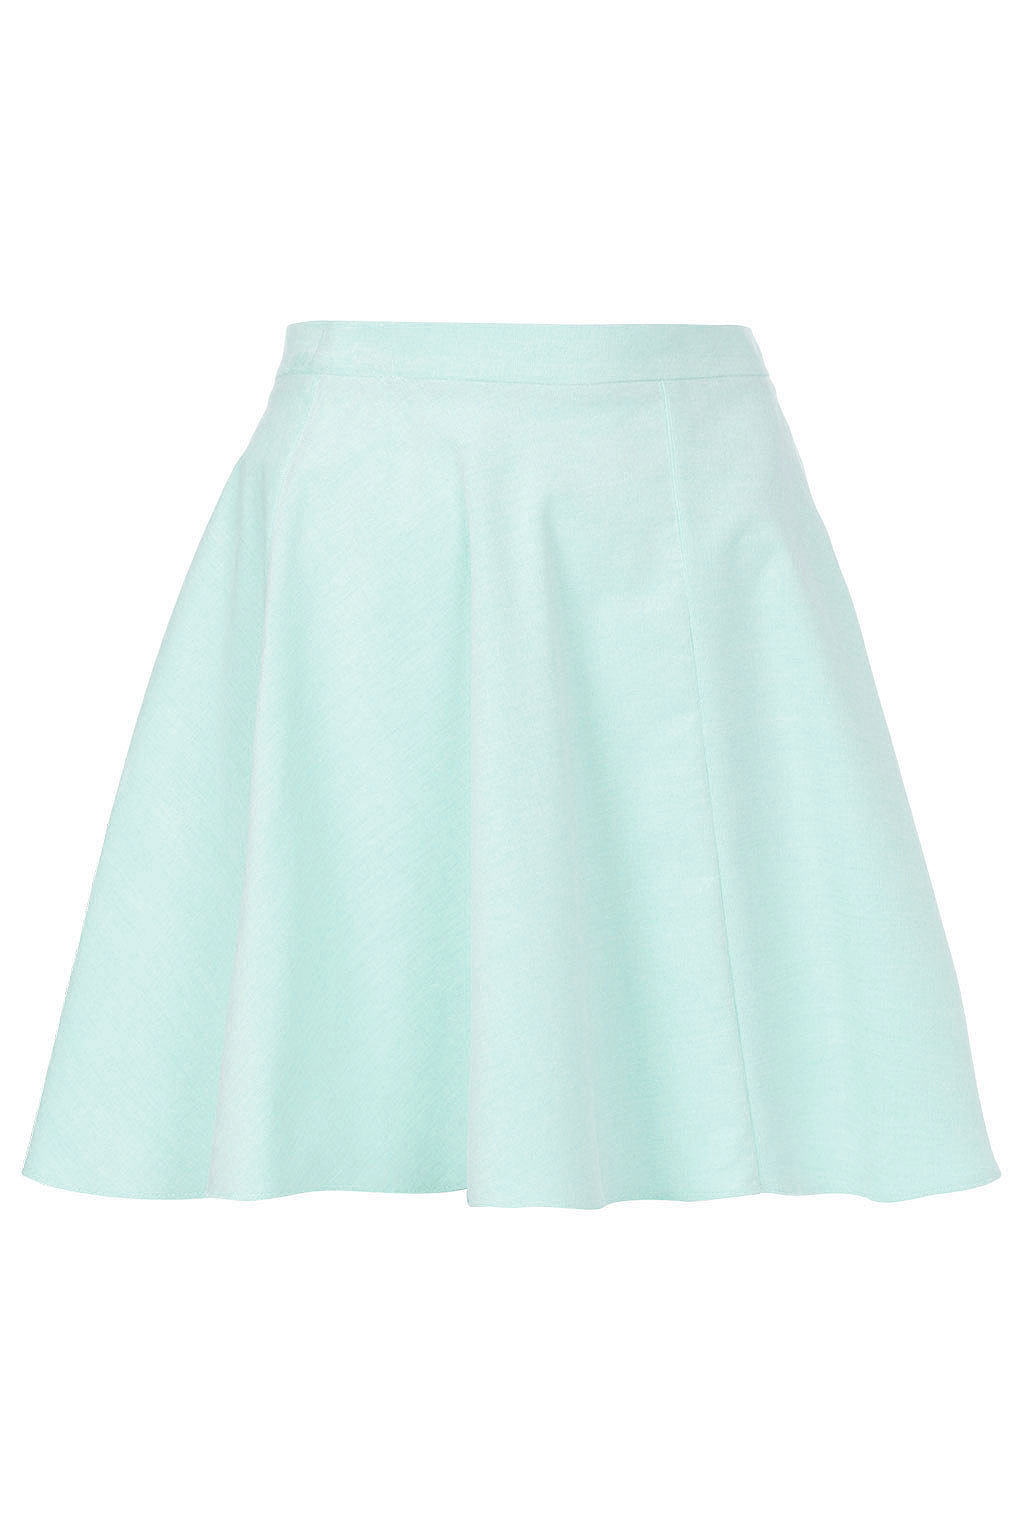 Mint Baby Cord Skater Skirt - Skirts - Clothing - Topshop on Wanelo